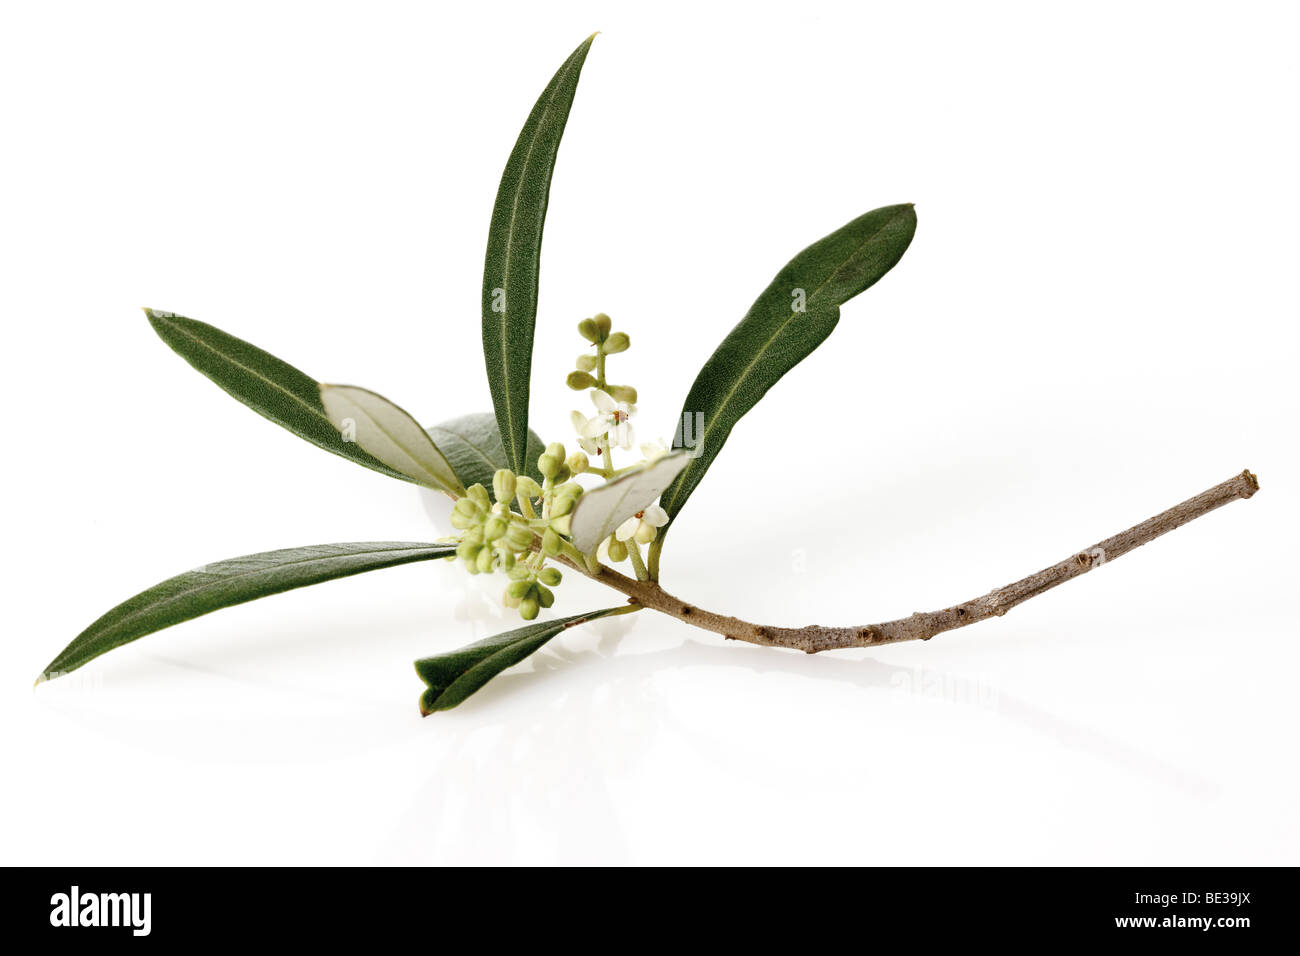 Branch of olive flowers Stock Photo